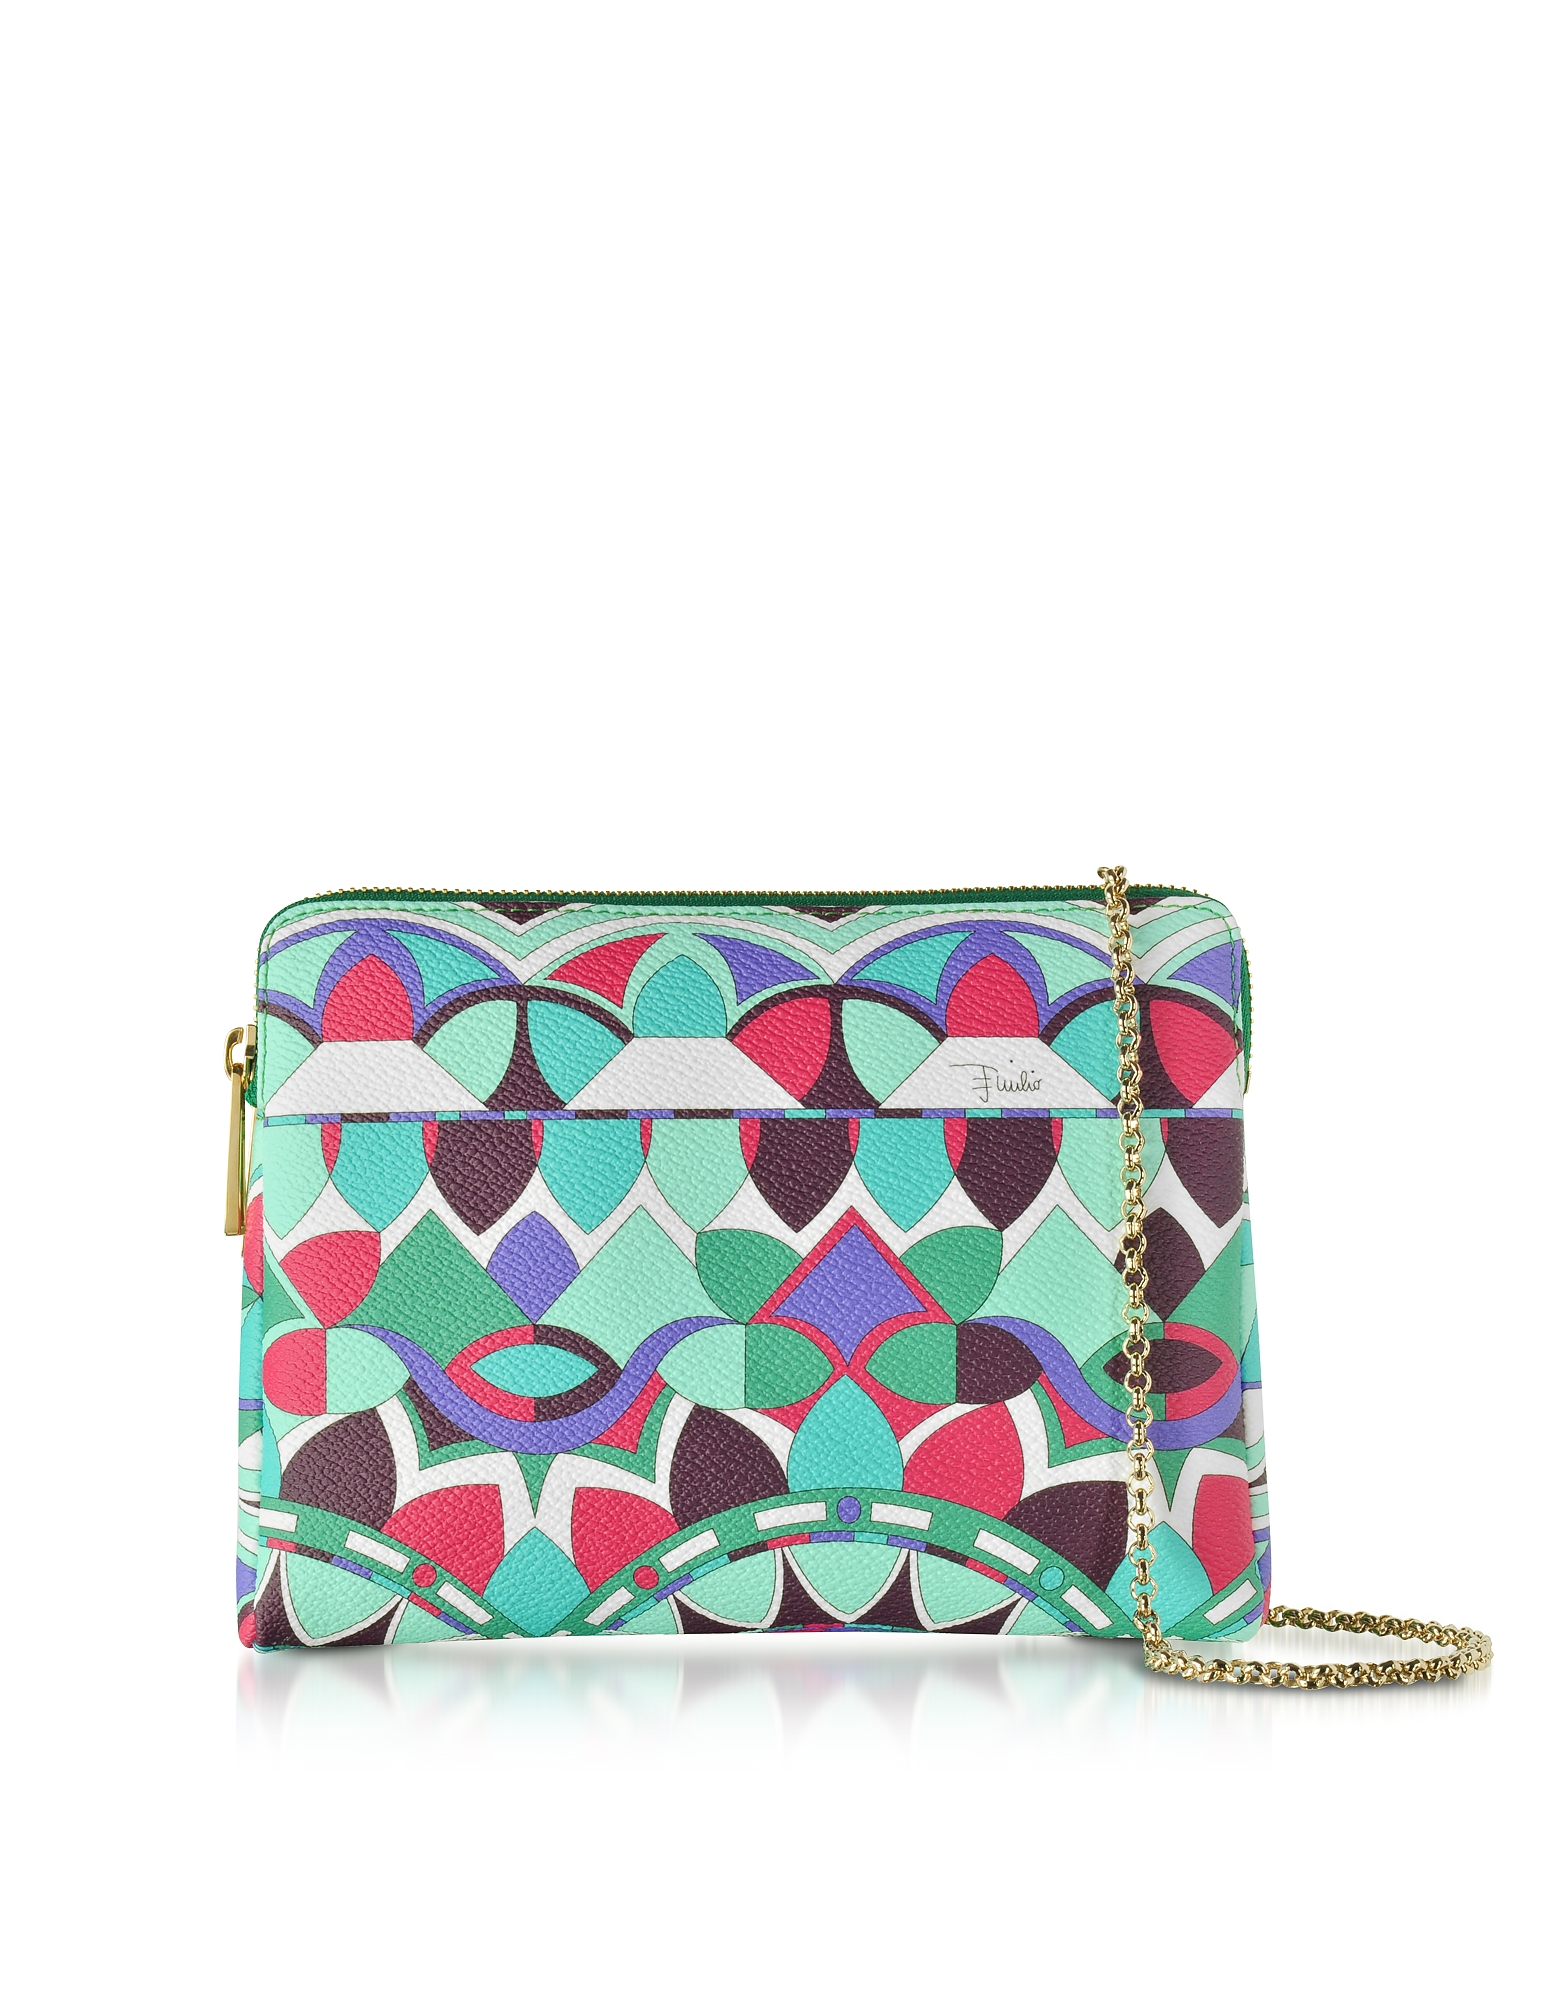 Emilio Pucci Handbags, Optical Printed Leather Clutch